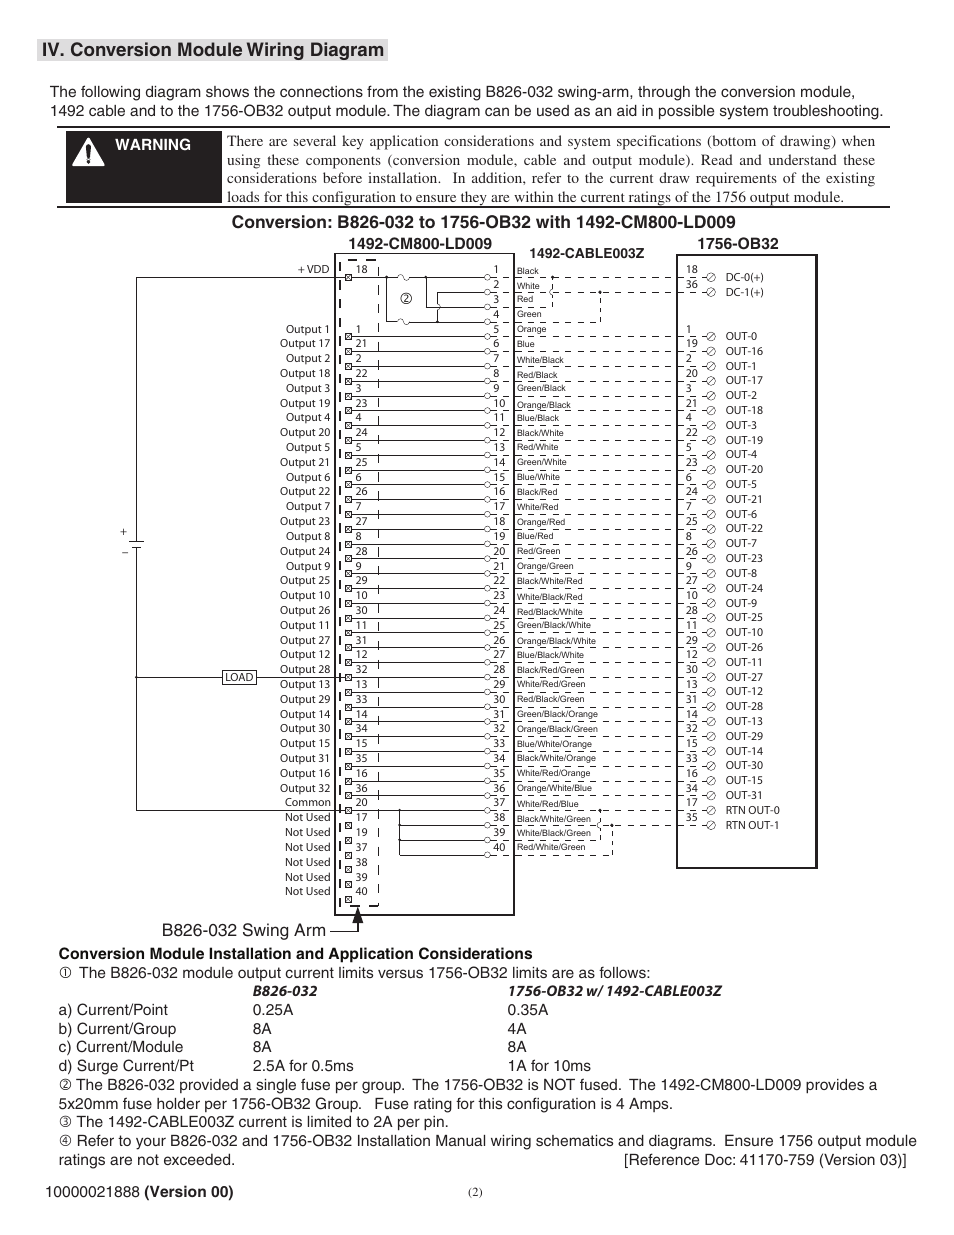 Iv. conversion module wiring diagram | Rockwell Automation 1492-CM800-LD009  Field Wire